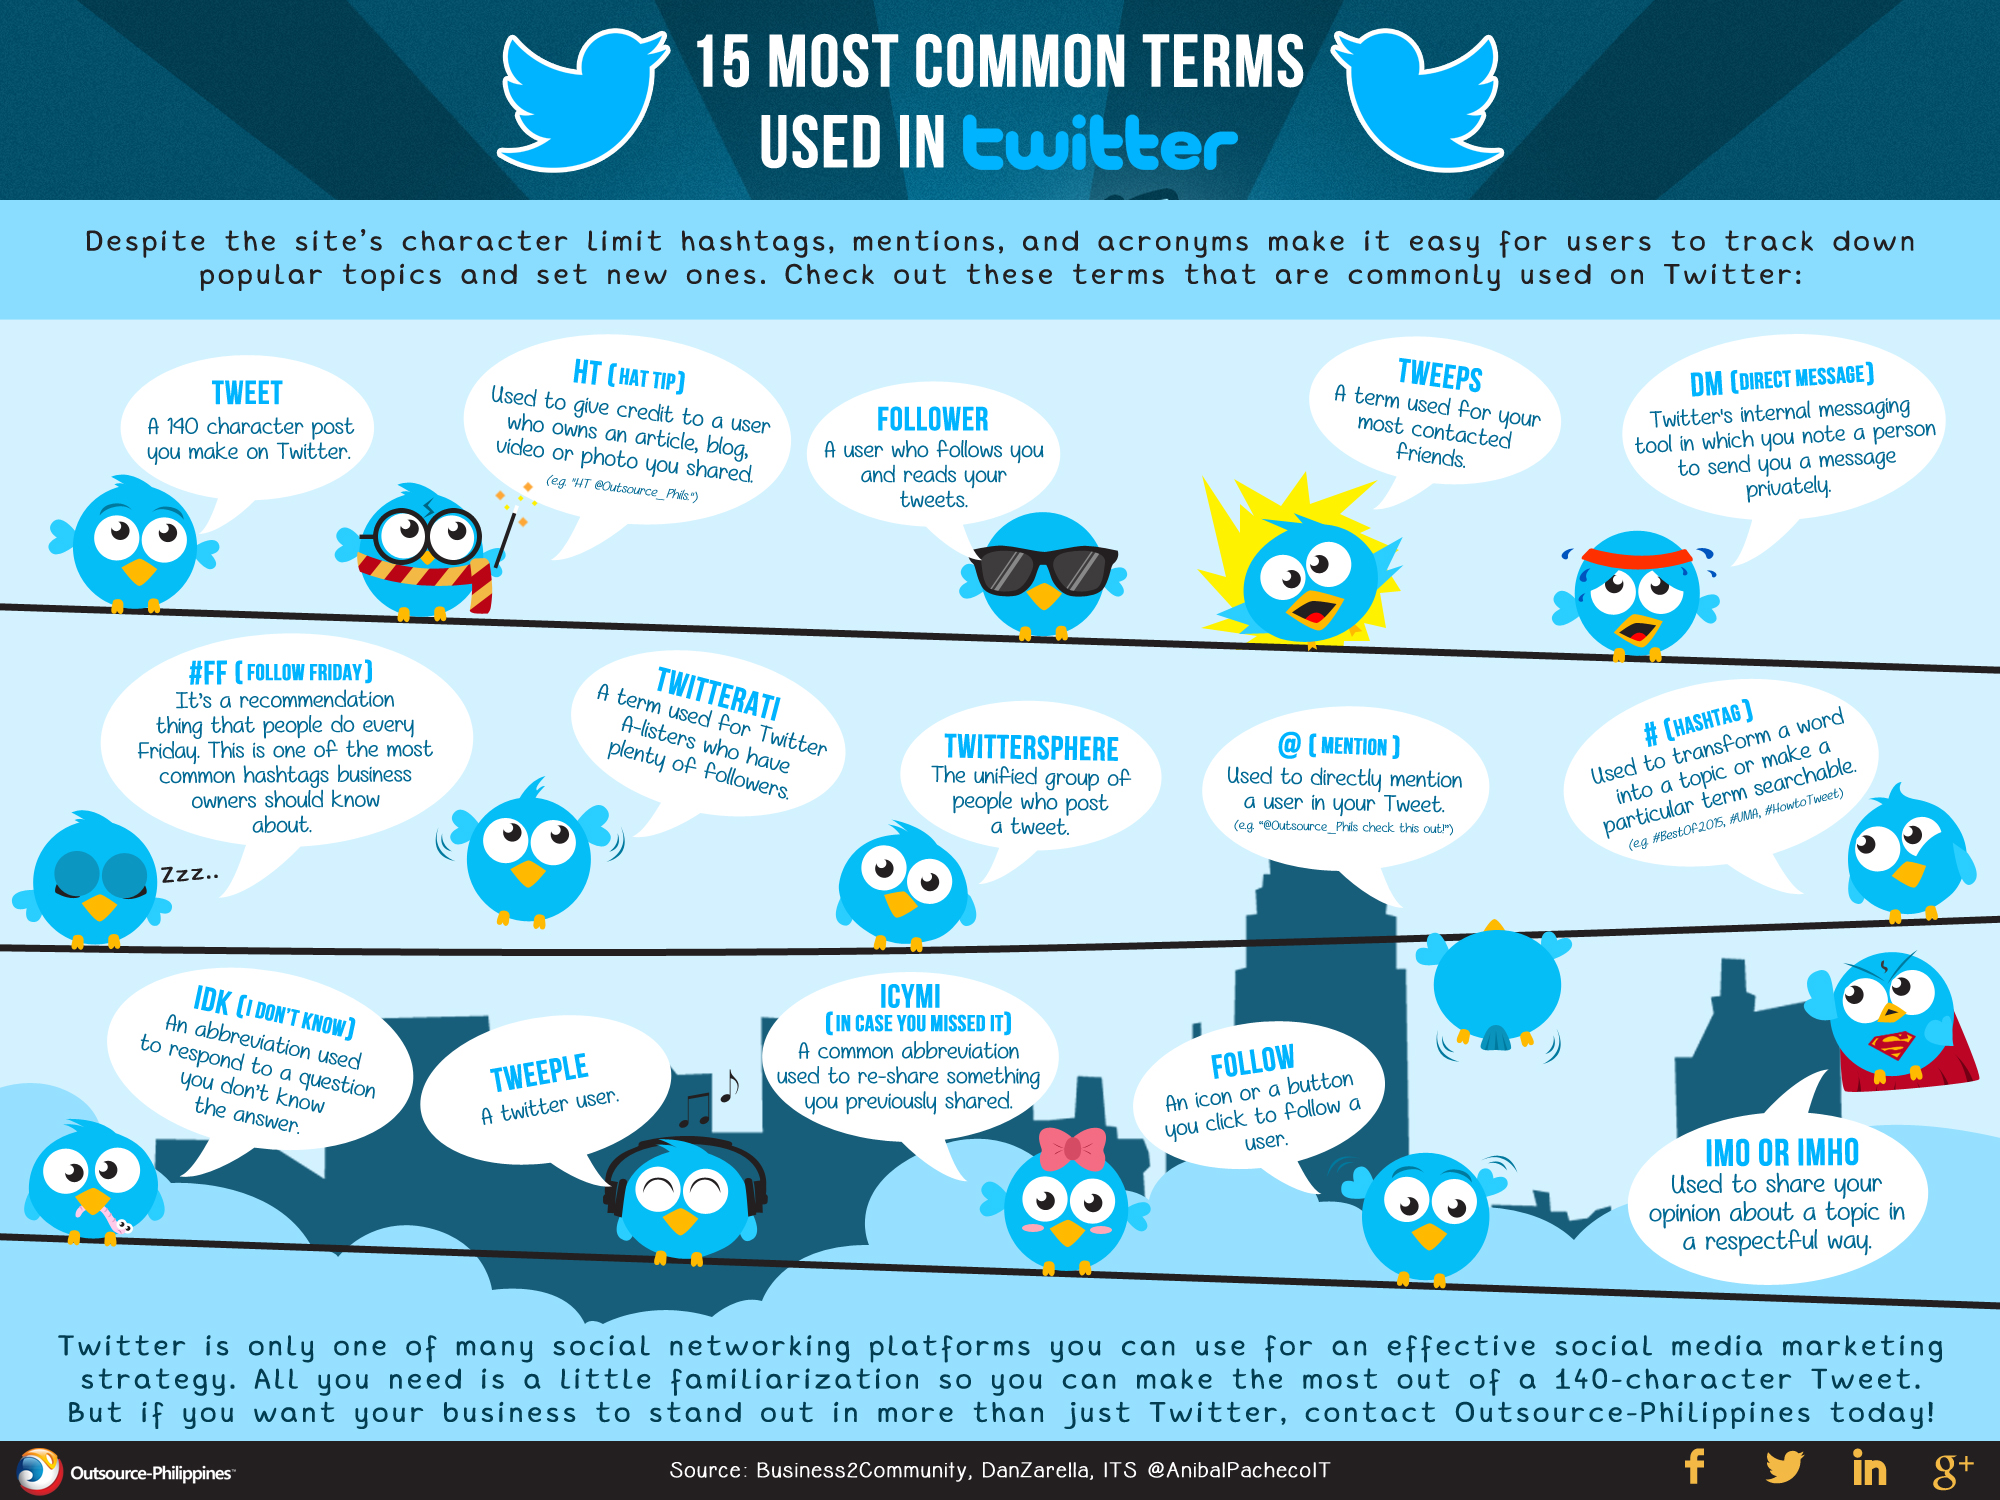 15 Most Common Terms Used in Twitter